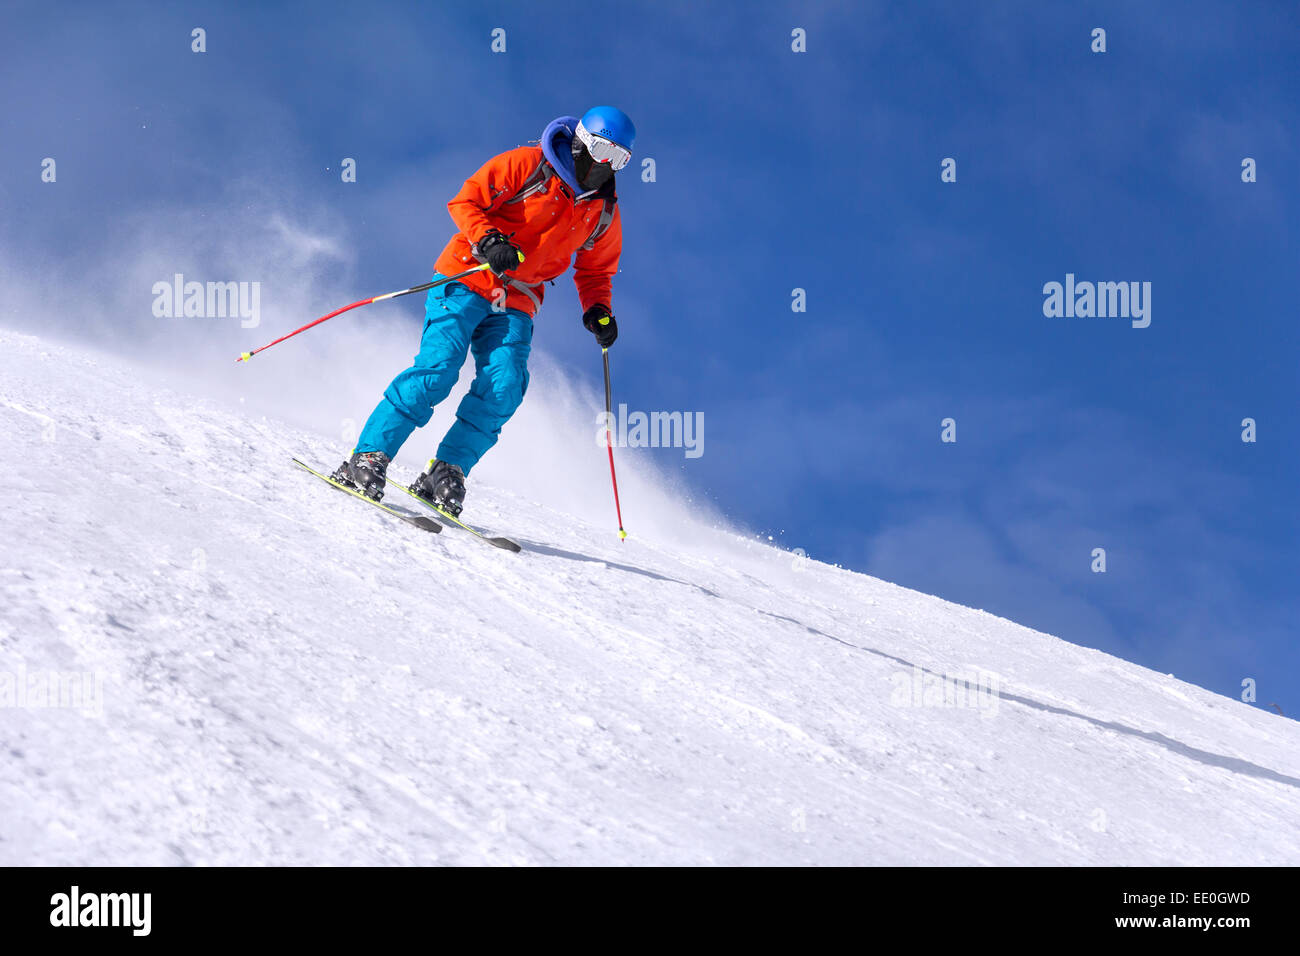 Skier skiing downhill in high mountains and sunny day - Stock Image